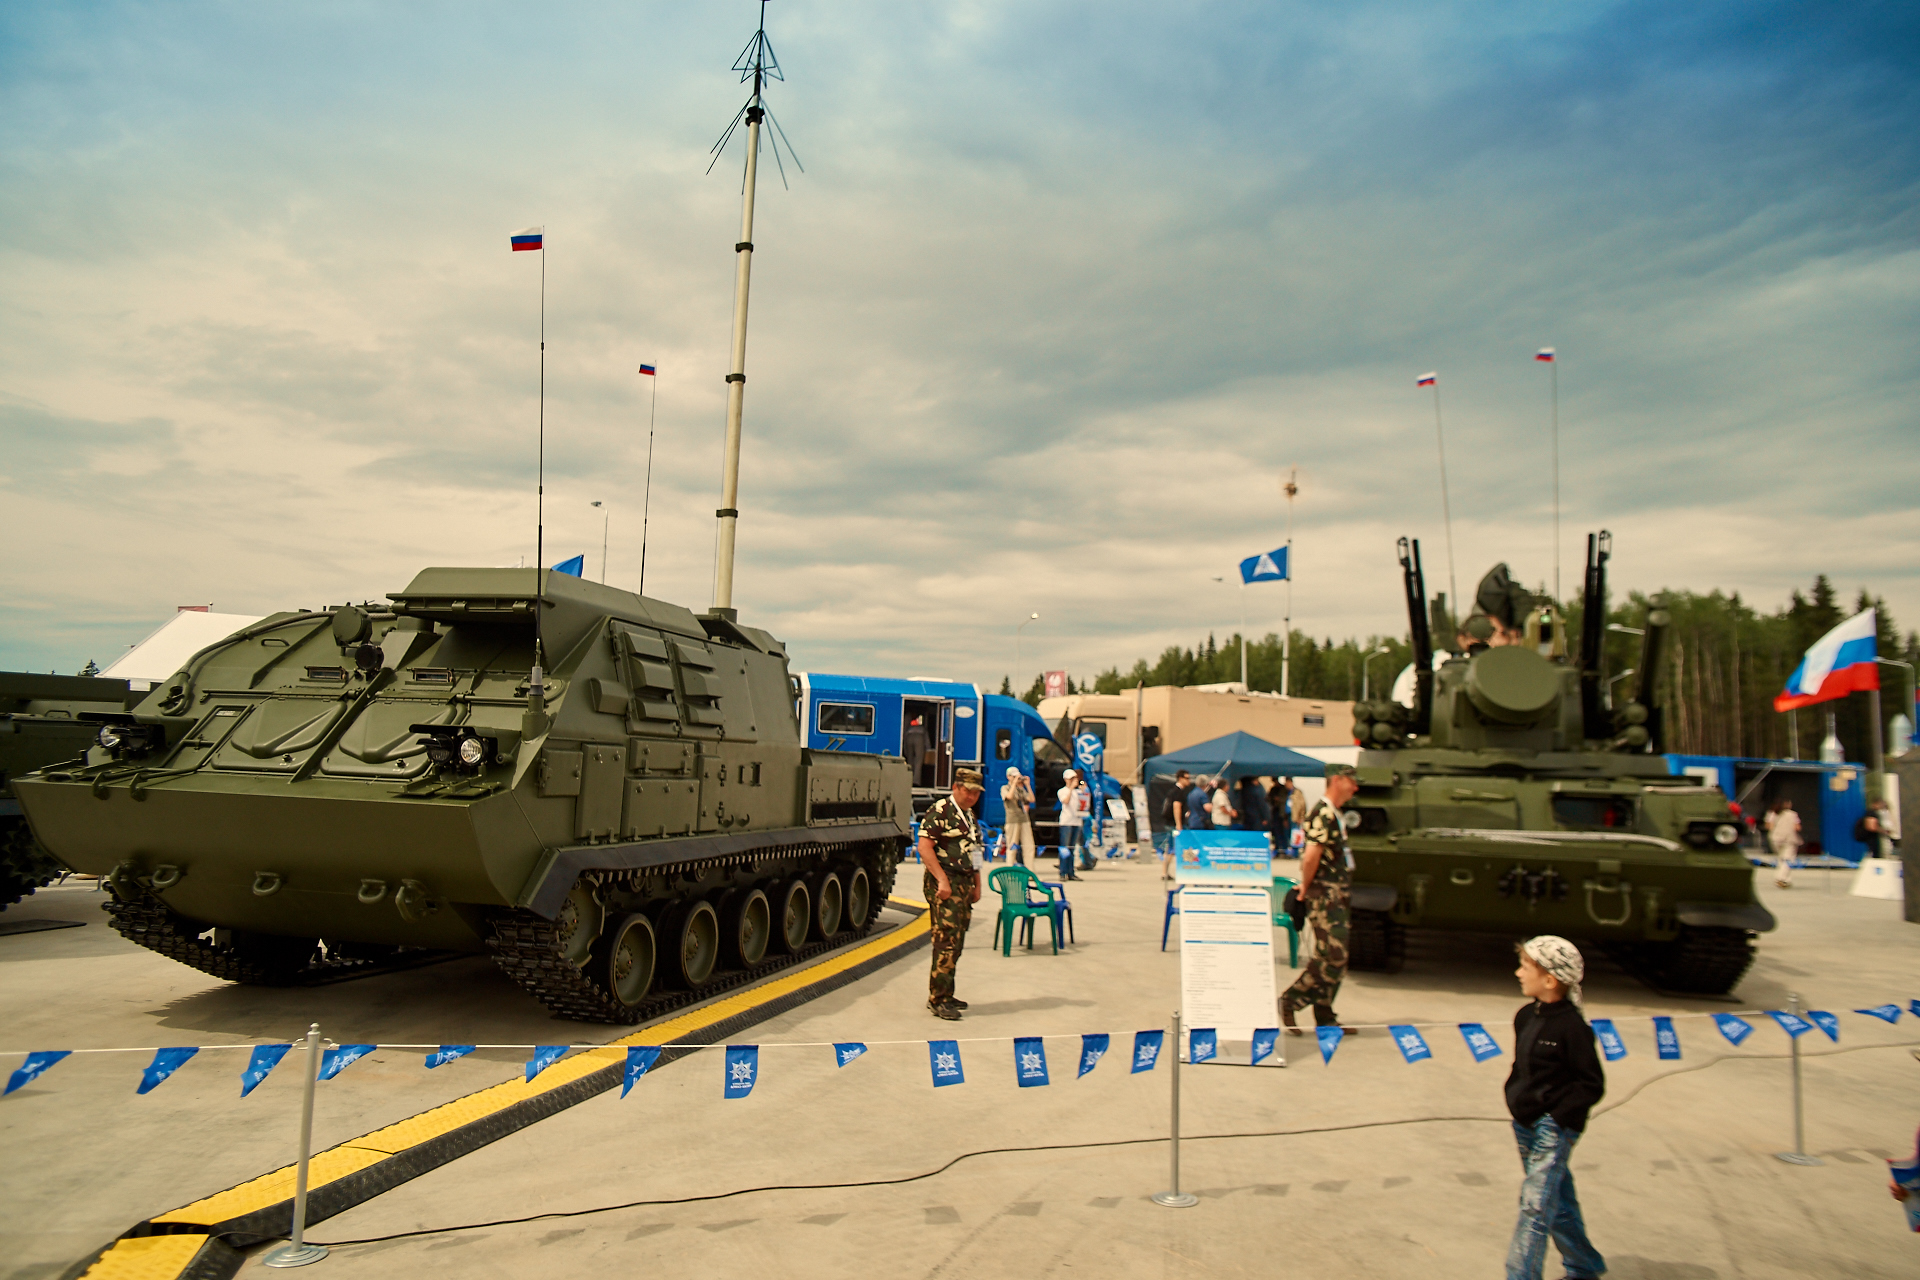 Russian Military Photos and Videos #2 - Page 37 0_a38a0_cebdd37f_orig